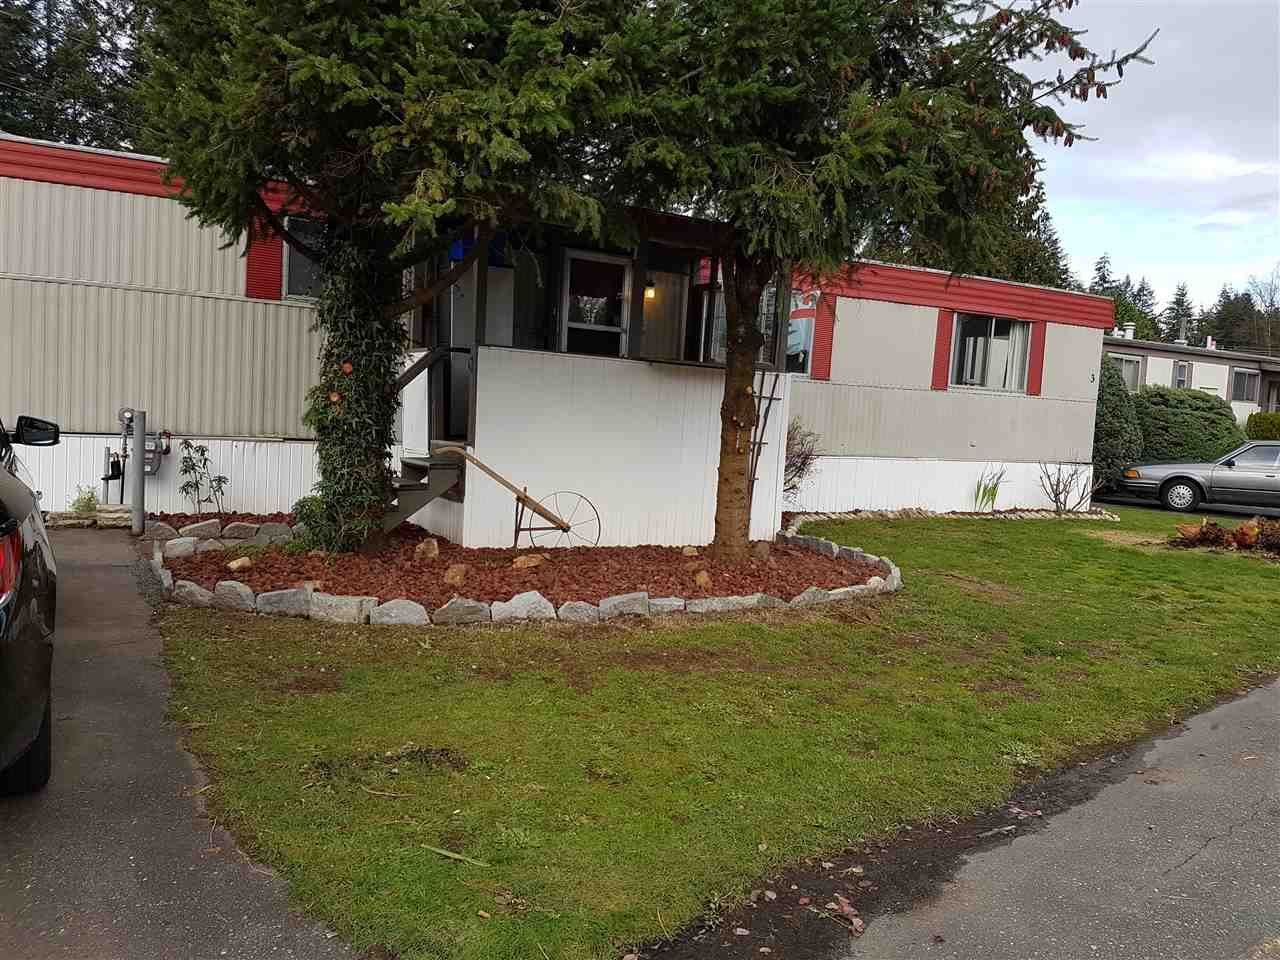 """Main Photo: 3 3031 200 Street in Langley: Brookswood Langley Manufactured Home for sale in """"Cedar Creek Estates"""" : MLS®# R2123592"""